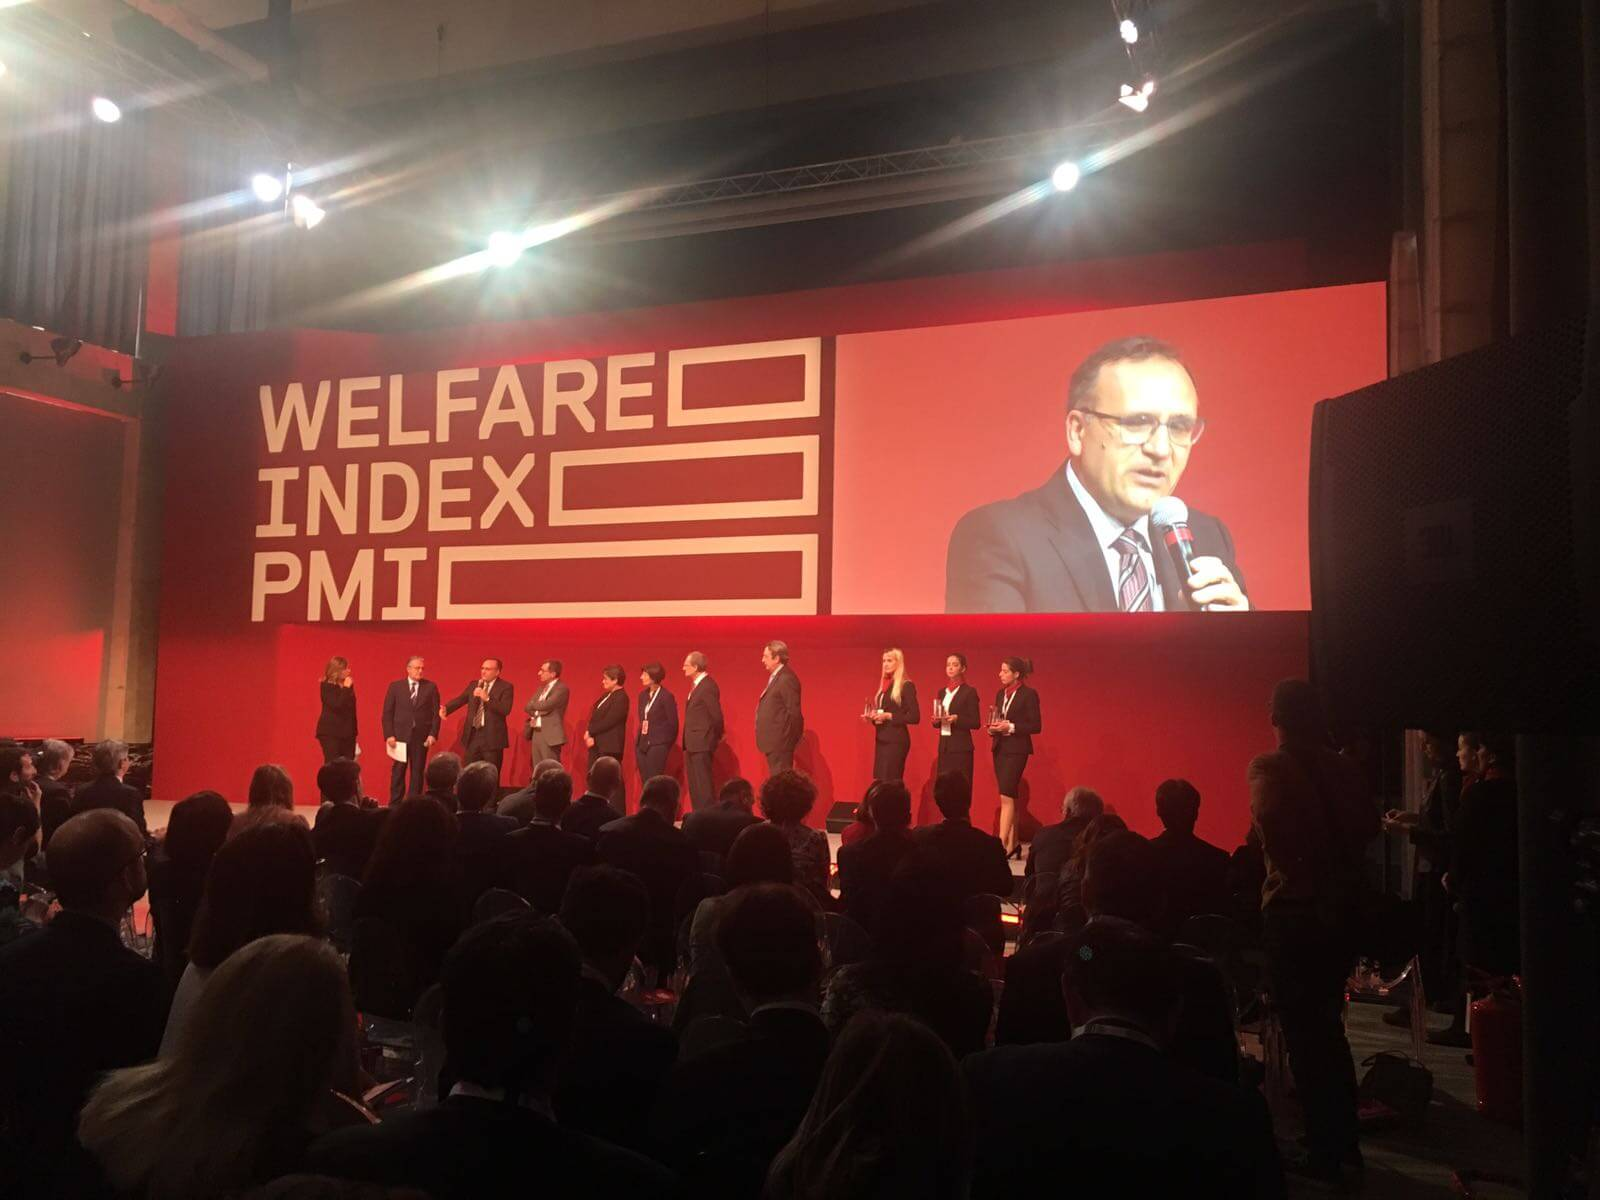 Welfare Index PMI 2018